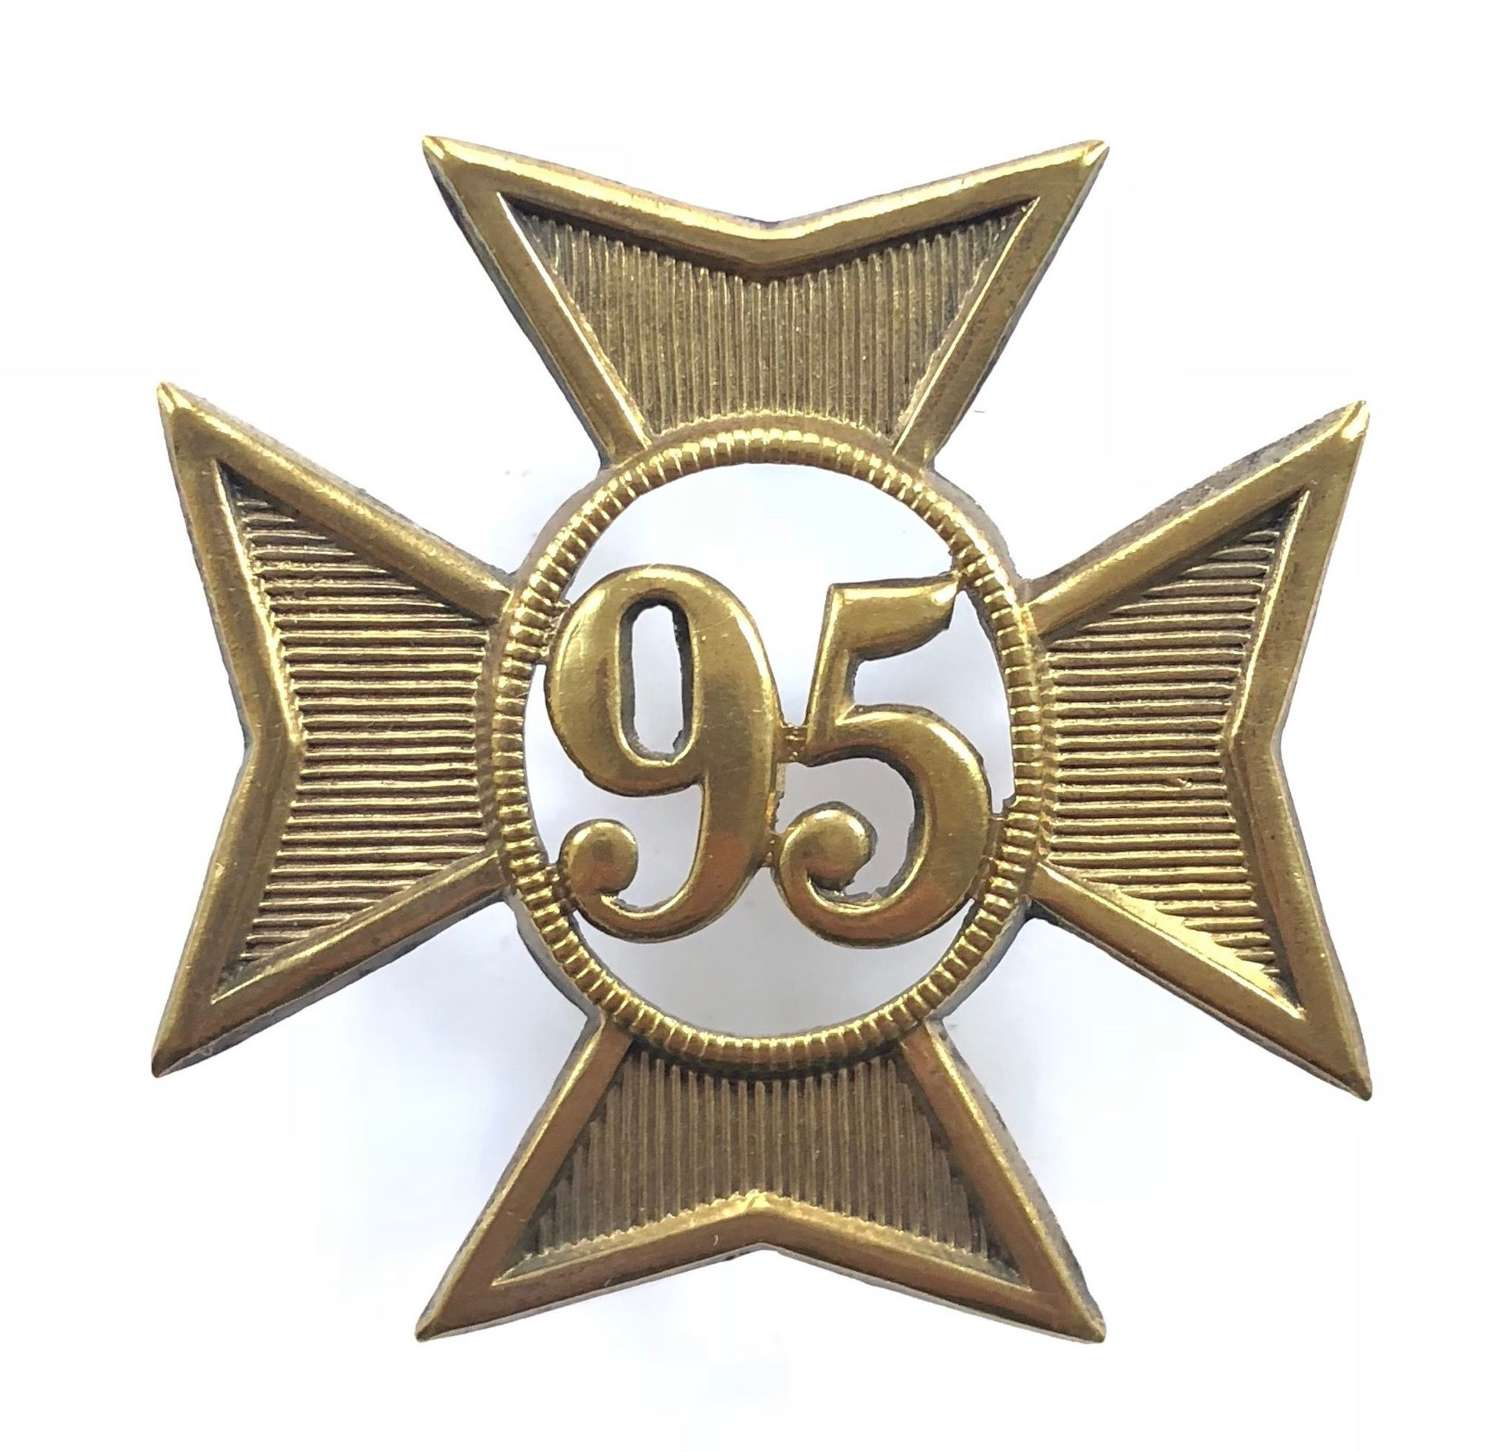 95th (Derbyshire) Regiment of Foot OR's glengarry badge C 1874-1881